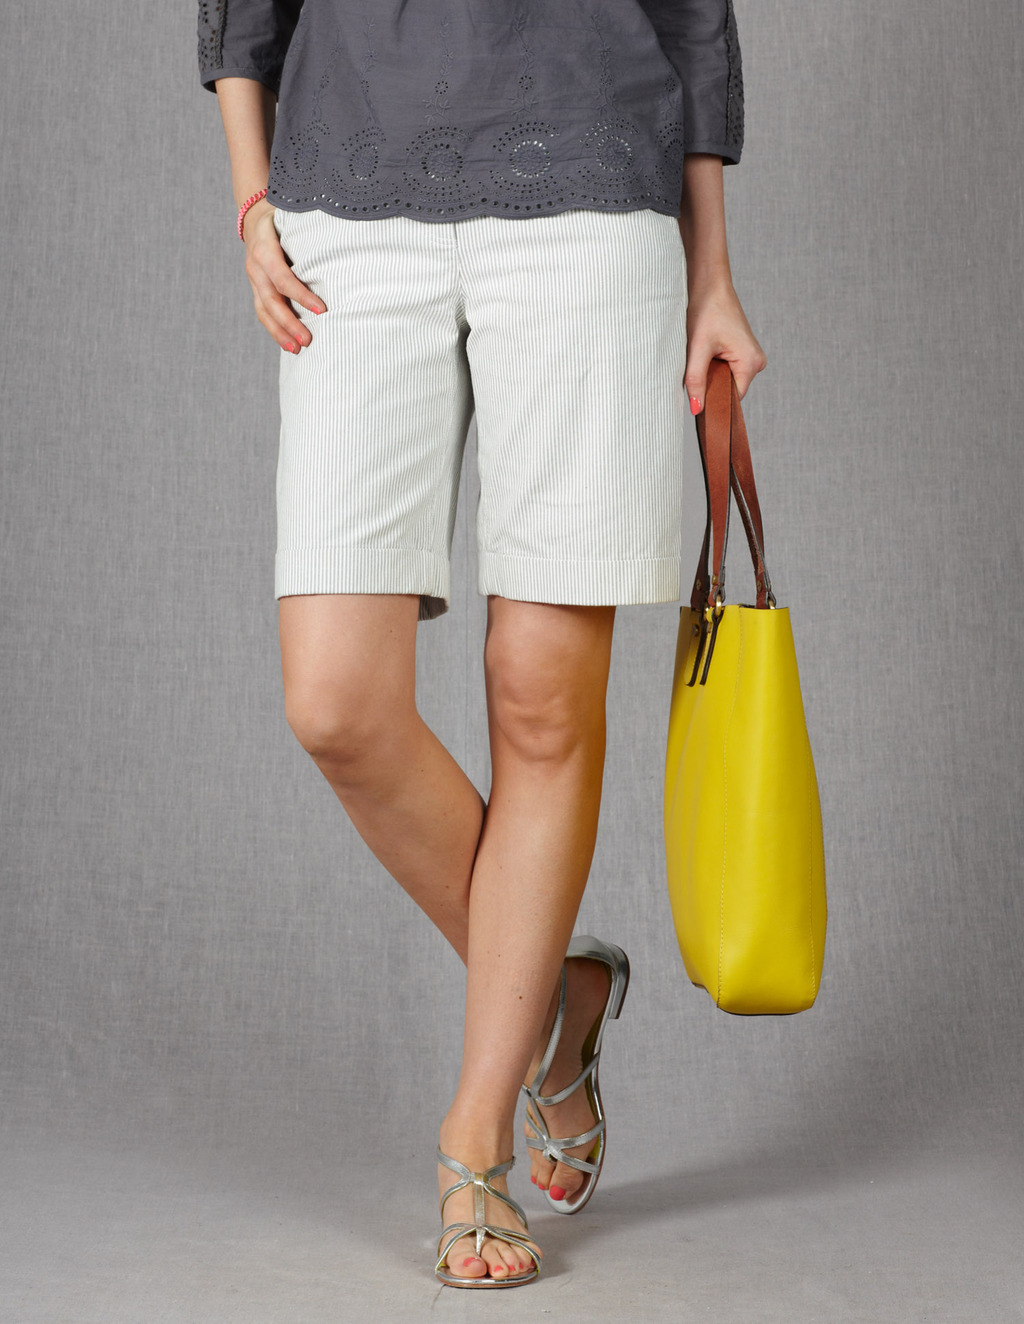 Off Duty Shorts - pattern: vertical stripes; waist: mid/regular rise; secondary colour: white; predominant colour: light grey; occasions: casual, holiday; fibres: cotton - stretch; texture group: cotton feel fabrics; pattern type: fabric; season: s/s 2013; pattern size: light/subtle (bottom); style: shorts; length: just above the knee; fit: standard